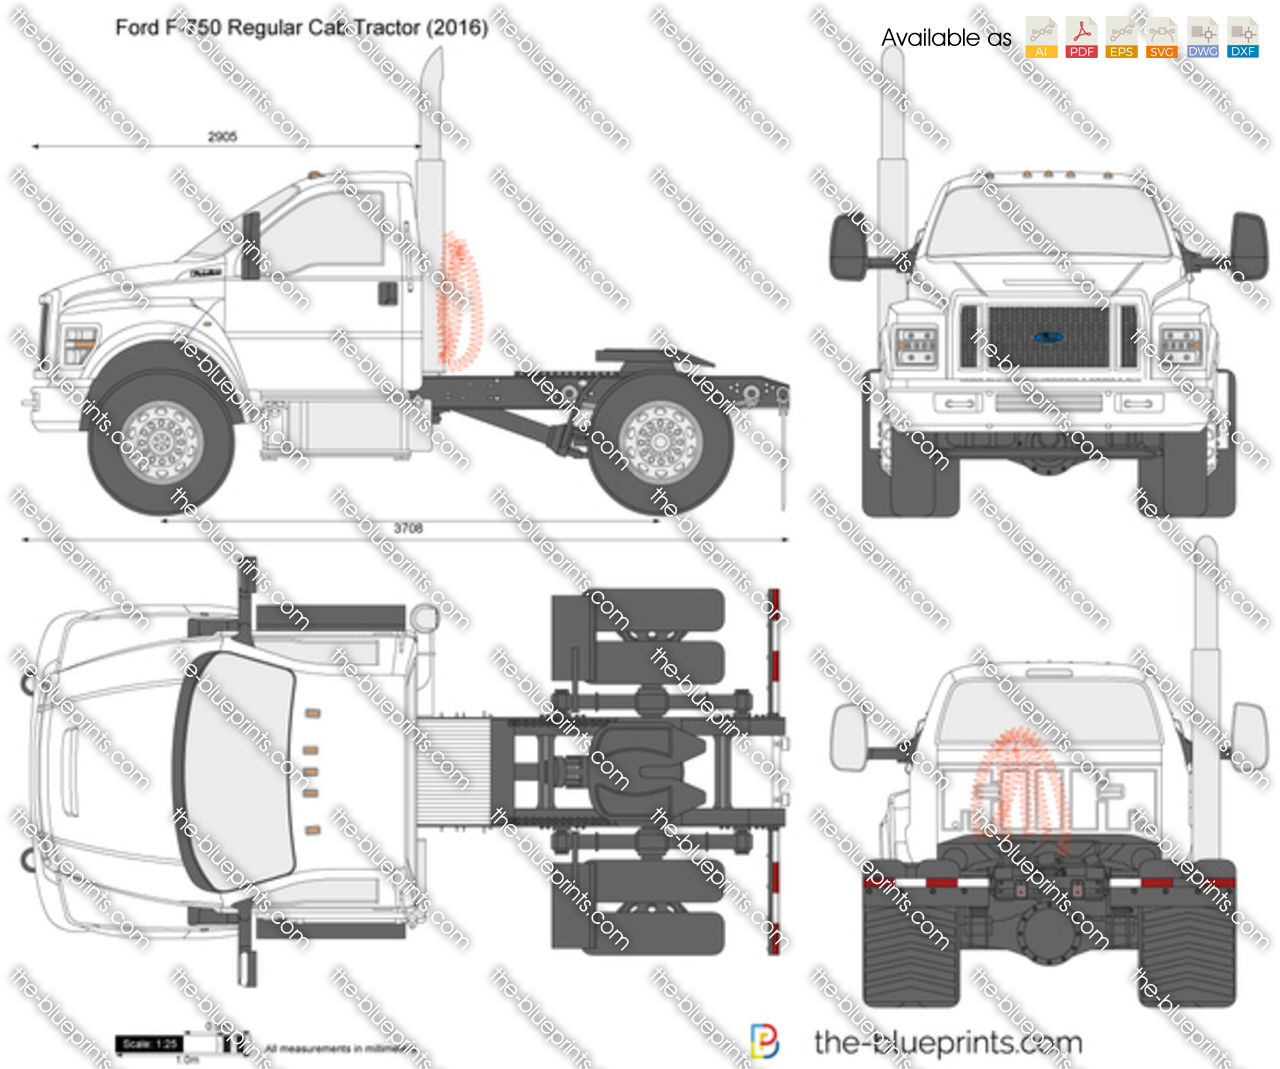 Ford F-750 Regular Cab Tractor vector drawing